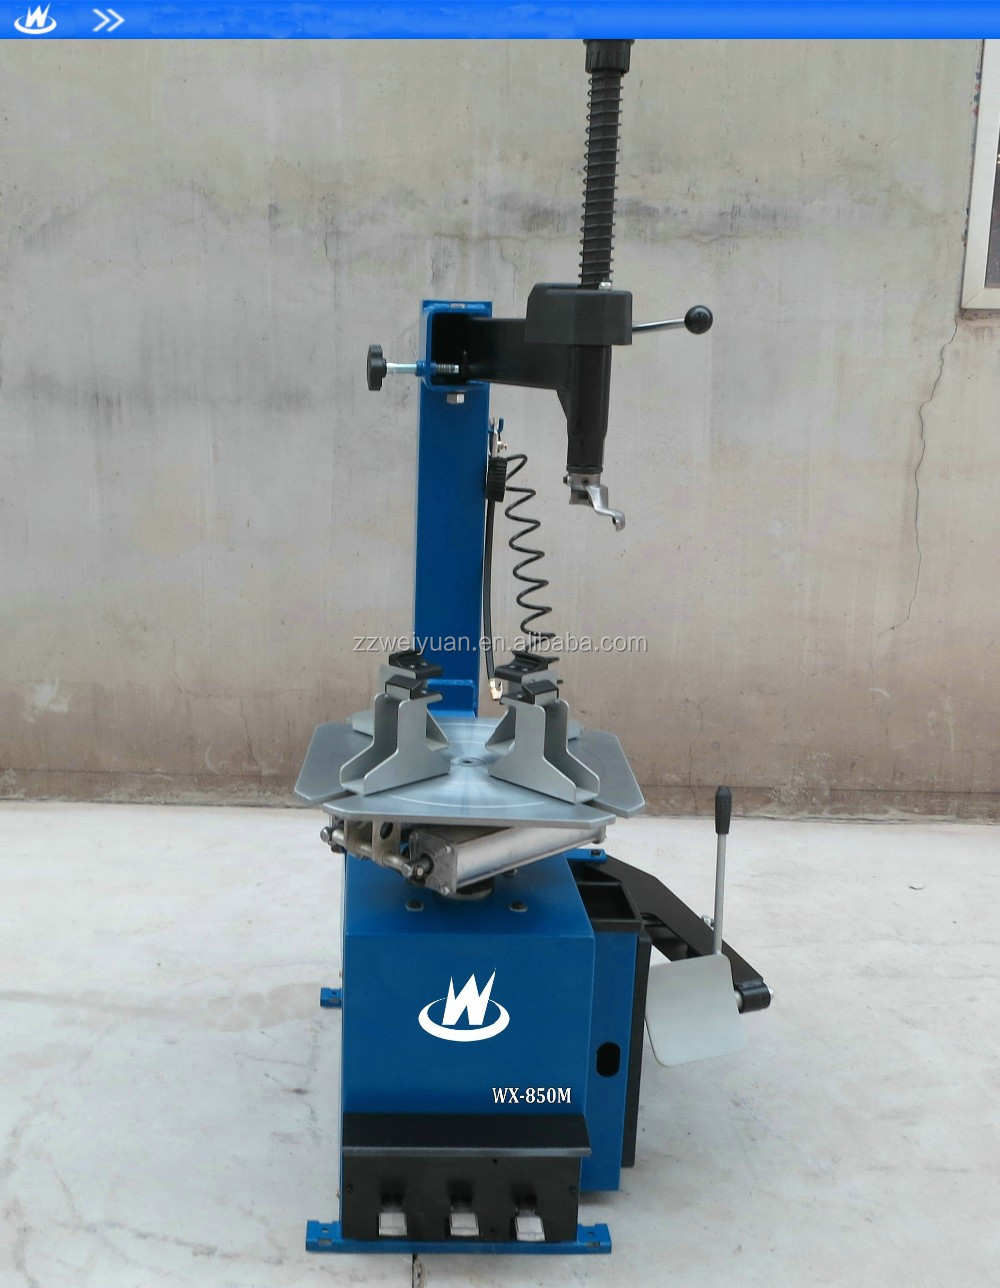 2017 Hot Sale Tire Changer For Motorcycle,Cheap Motorcycle Tire Changer For Sales,Manual Tire ...